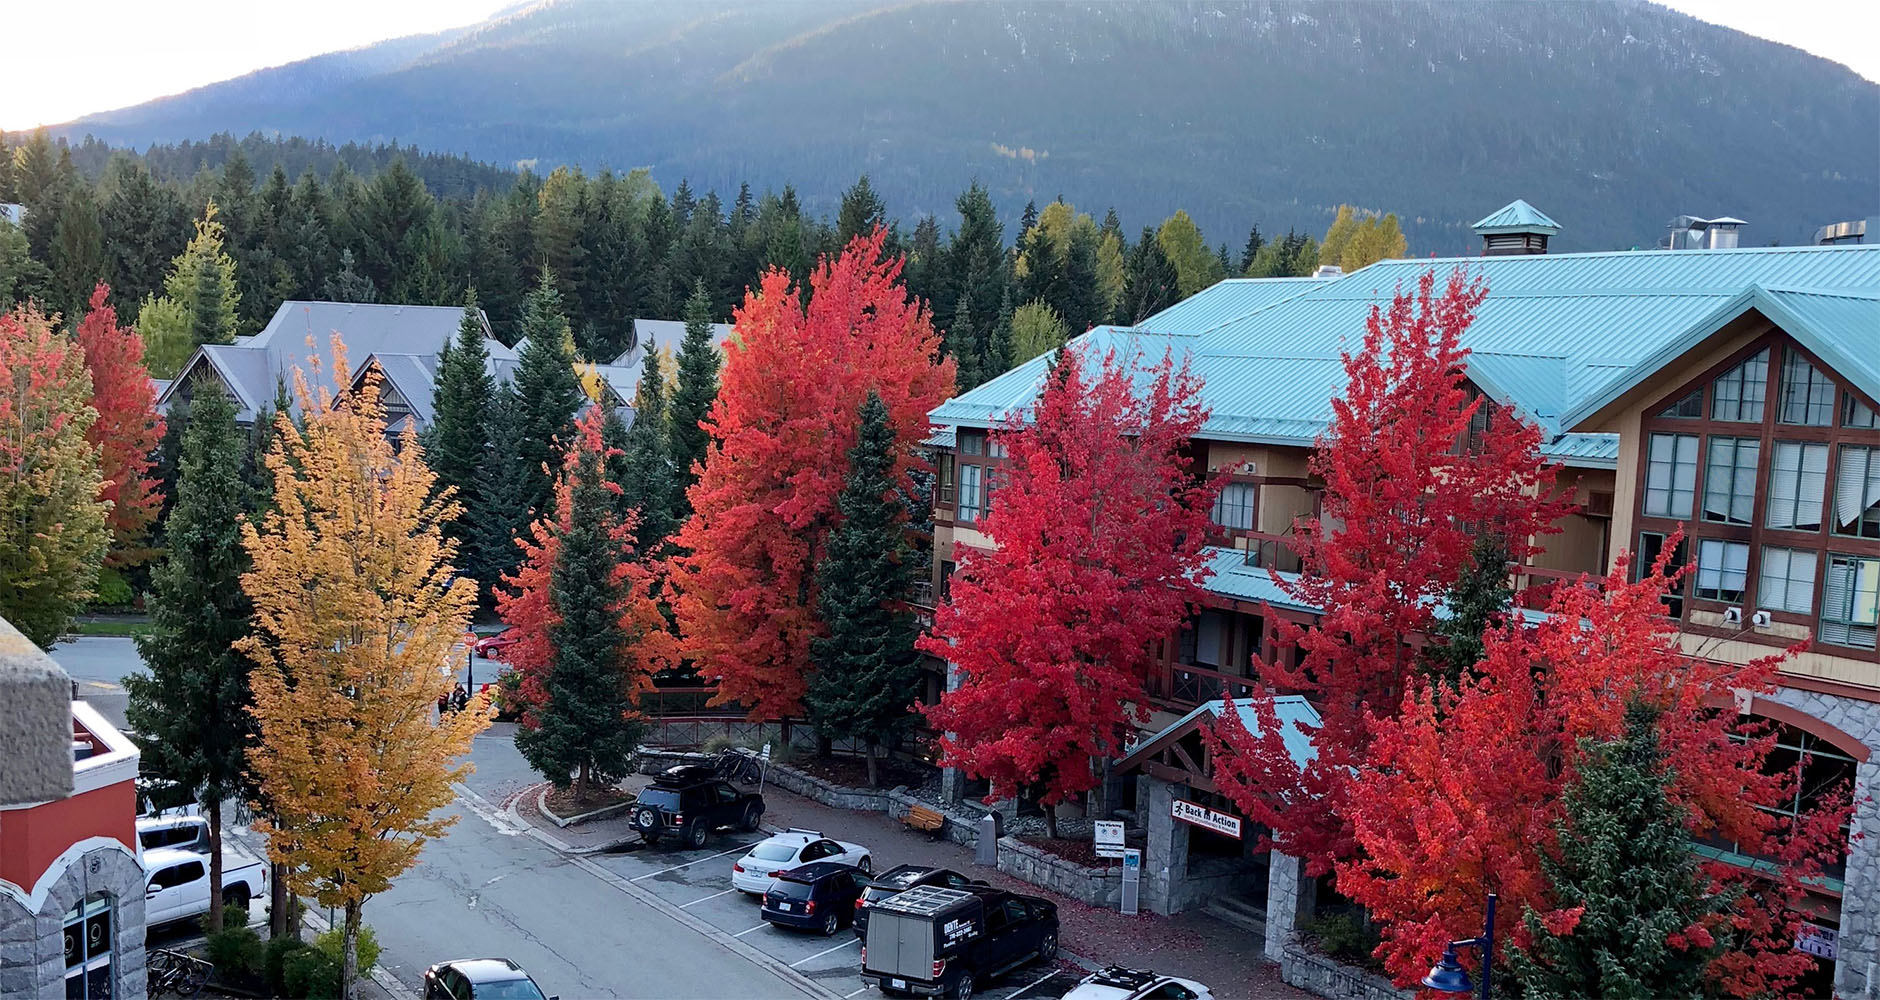 The view from our balcony showing beautiful autumnal trees at Summit Lodge Boutique Hotel in Whistler, Canada